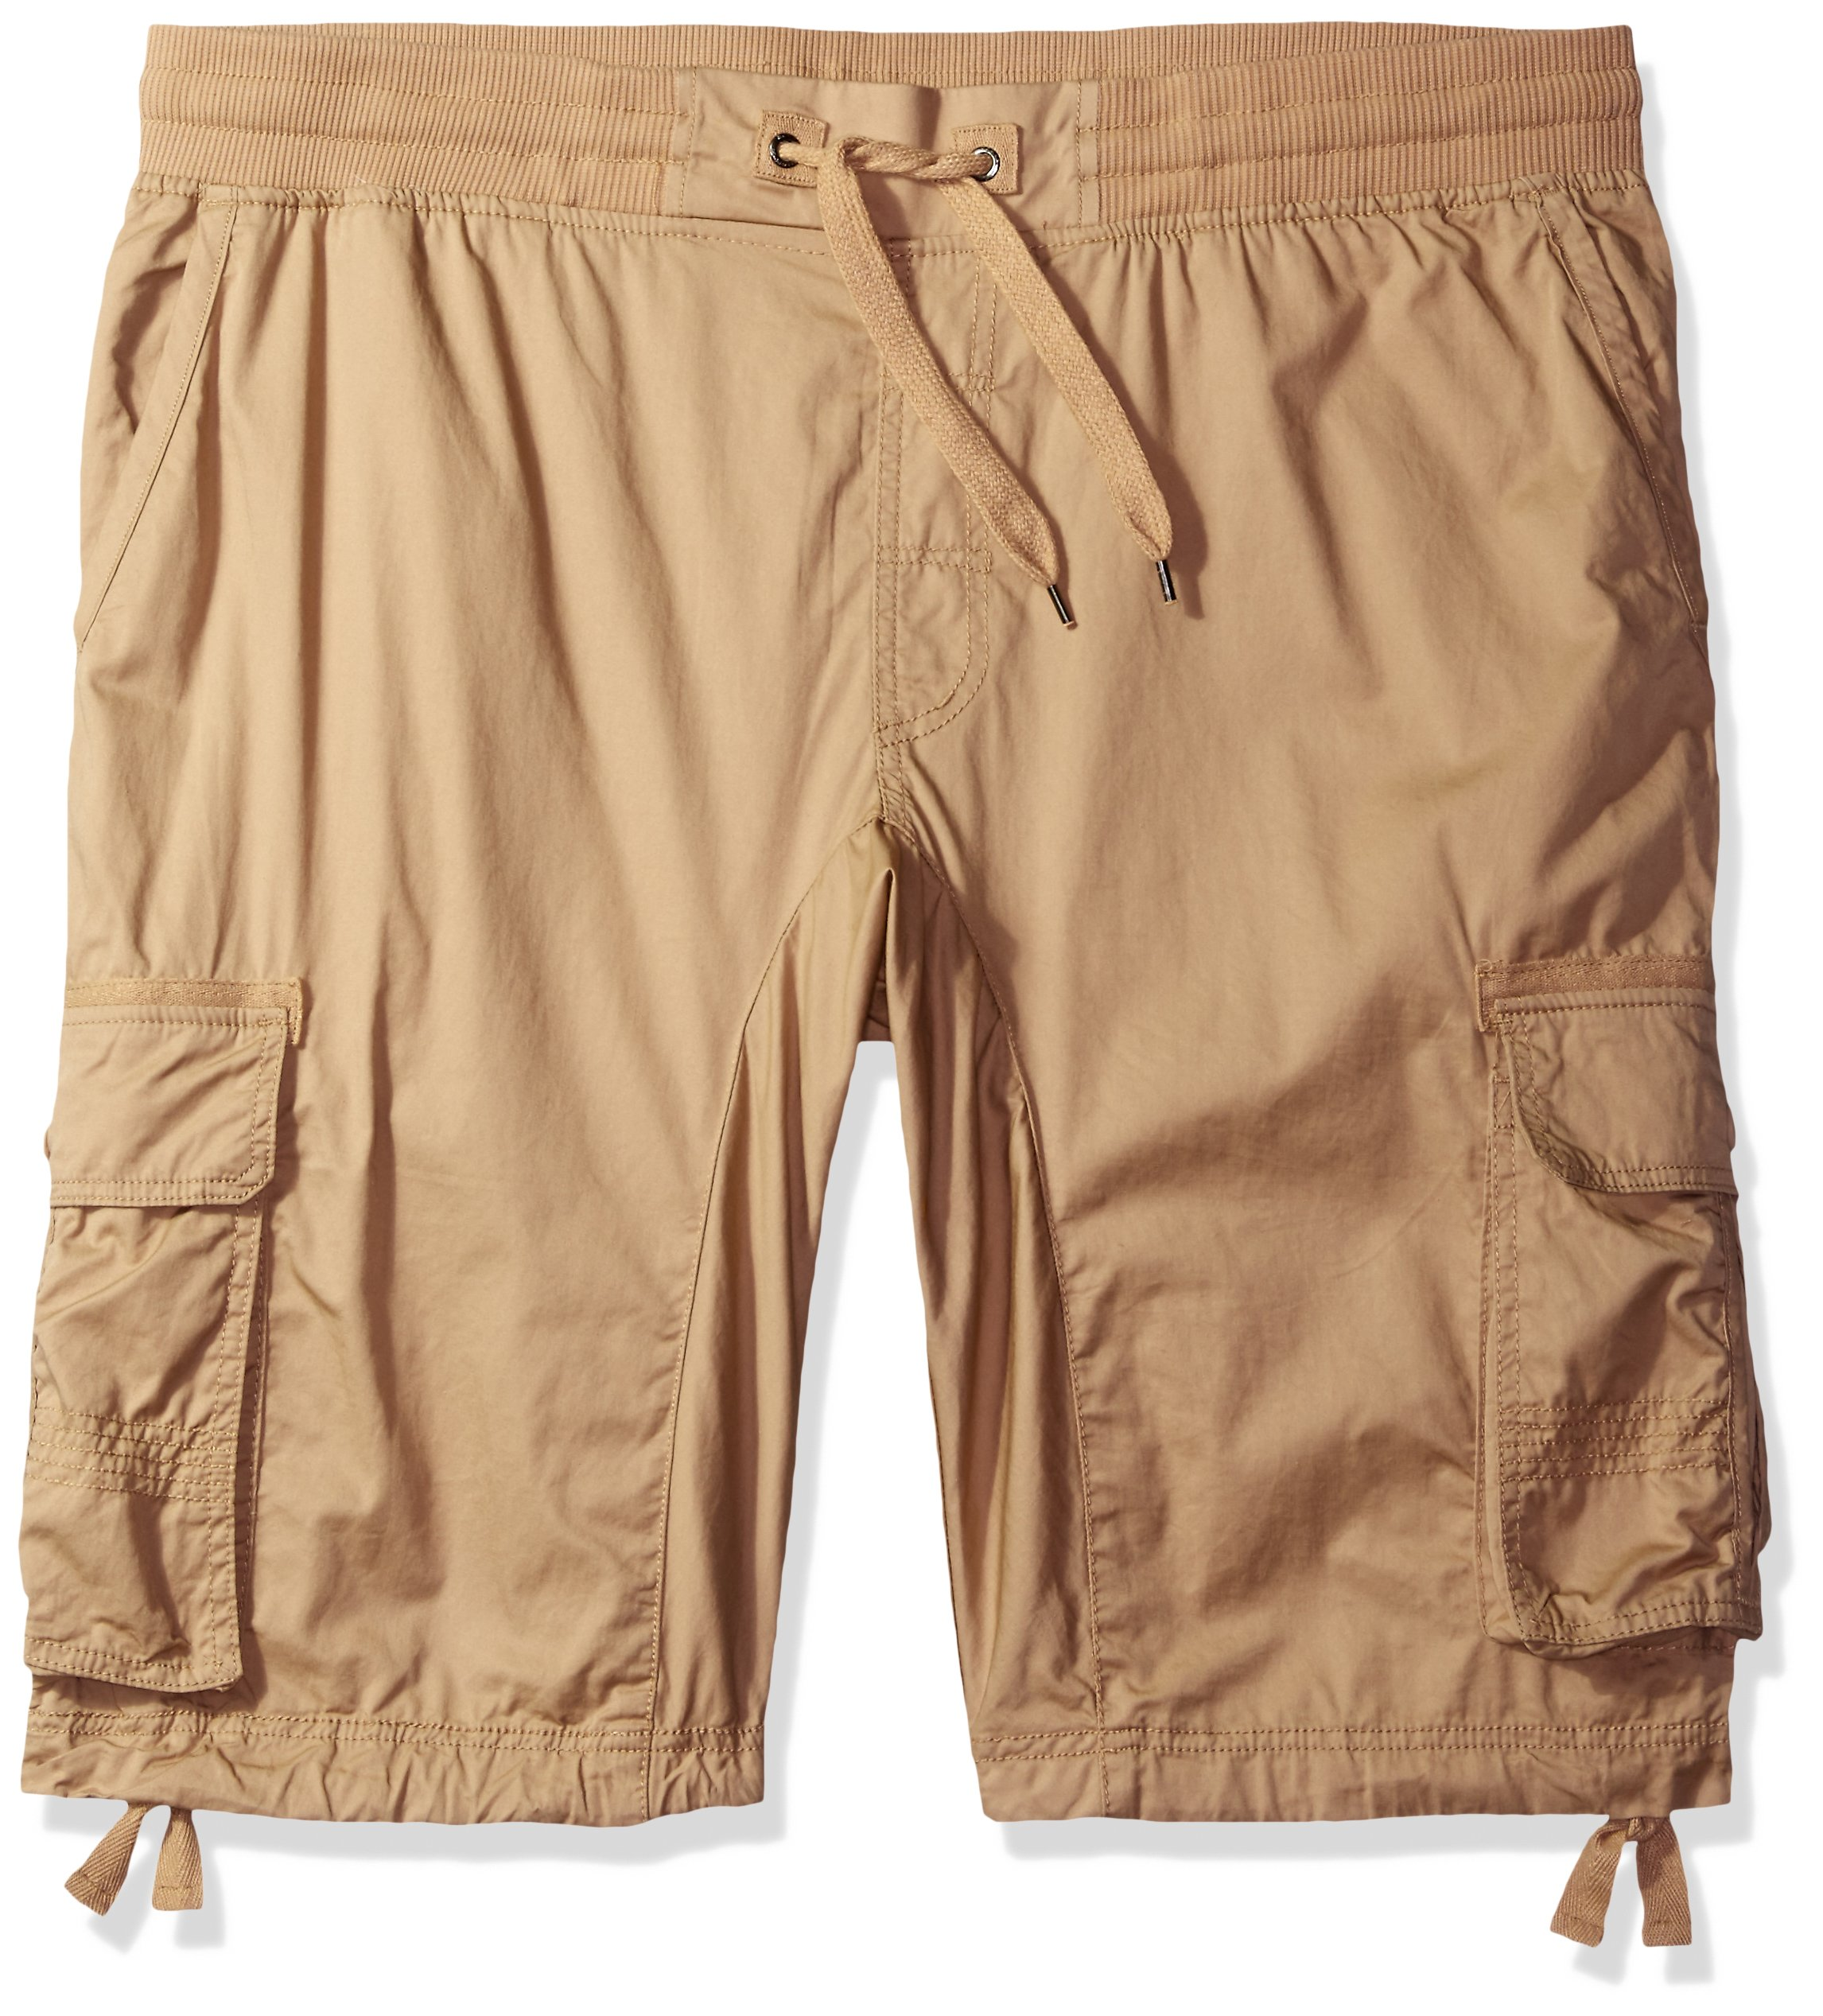 Southpole Men's Big and Tall Jogger Shorts with Cargo Pockets in Solid and Camo Colors, Deep Khaki(New), 5X-Large